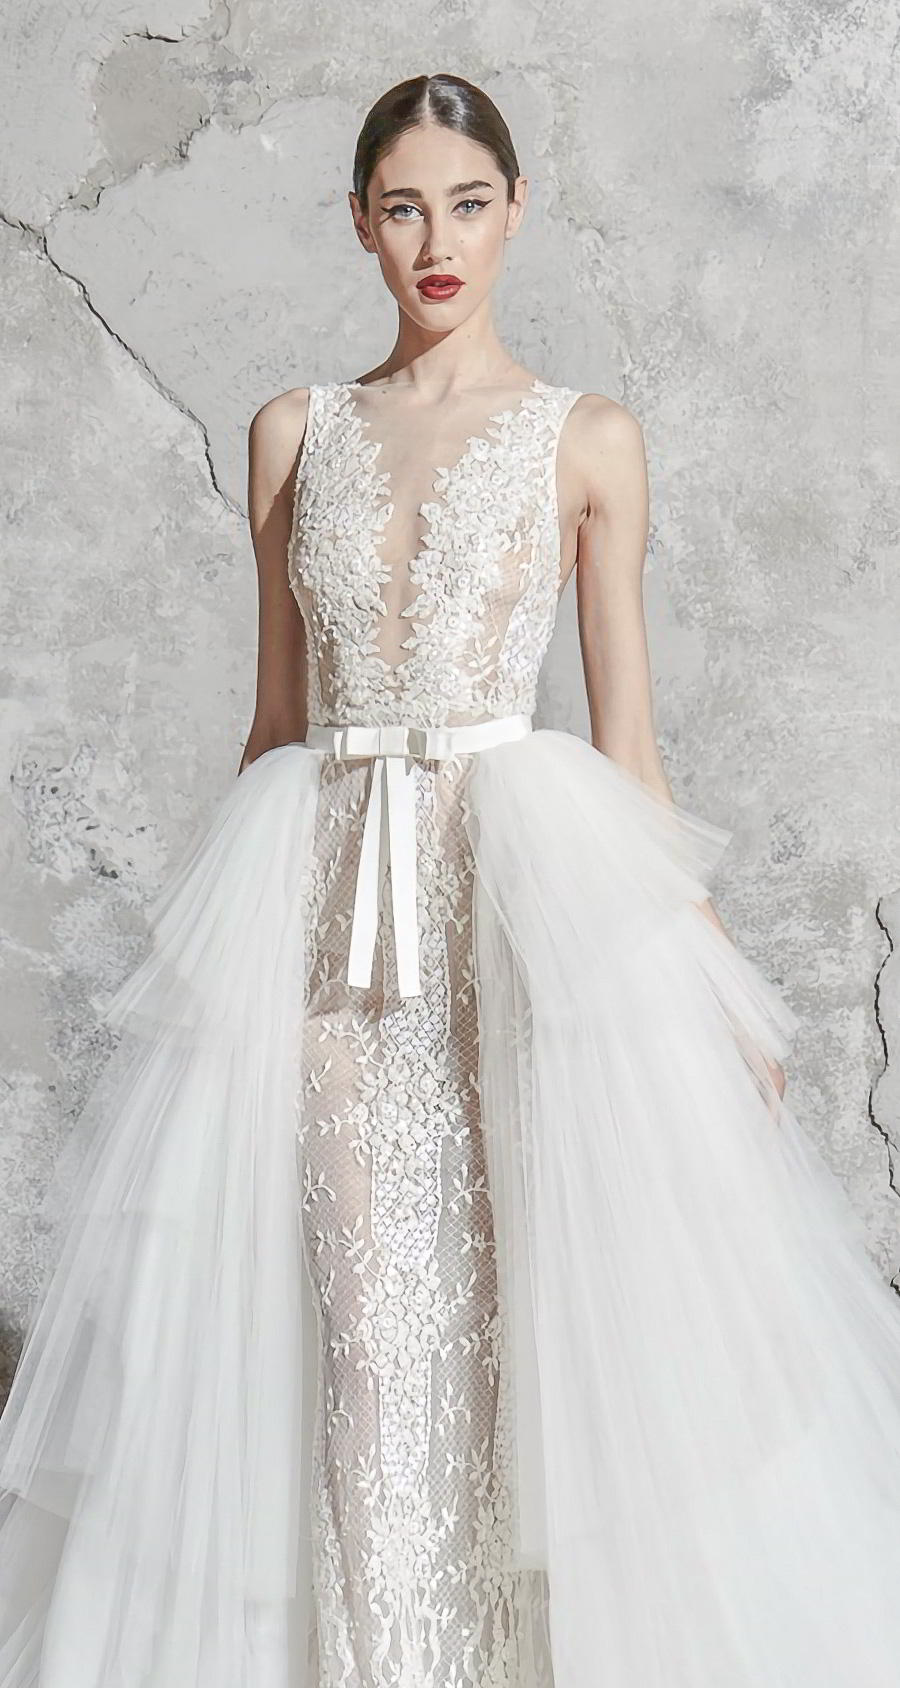 zuhair murad spring 2020 bridal sleeveless with strap illiusion jewel v neck full embellishment elegant fit and flare sheath wedding dress a  line overskirt chapel train (10) zv